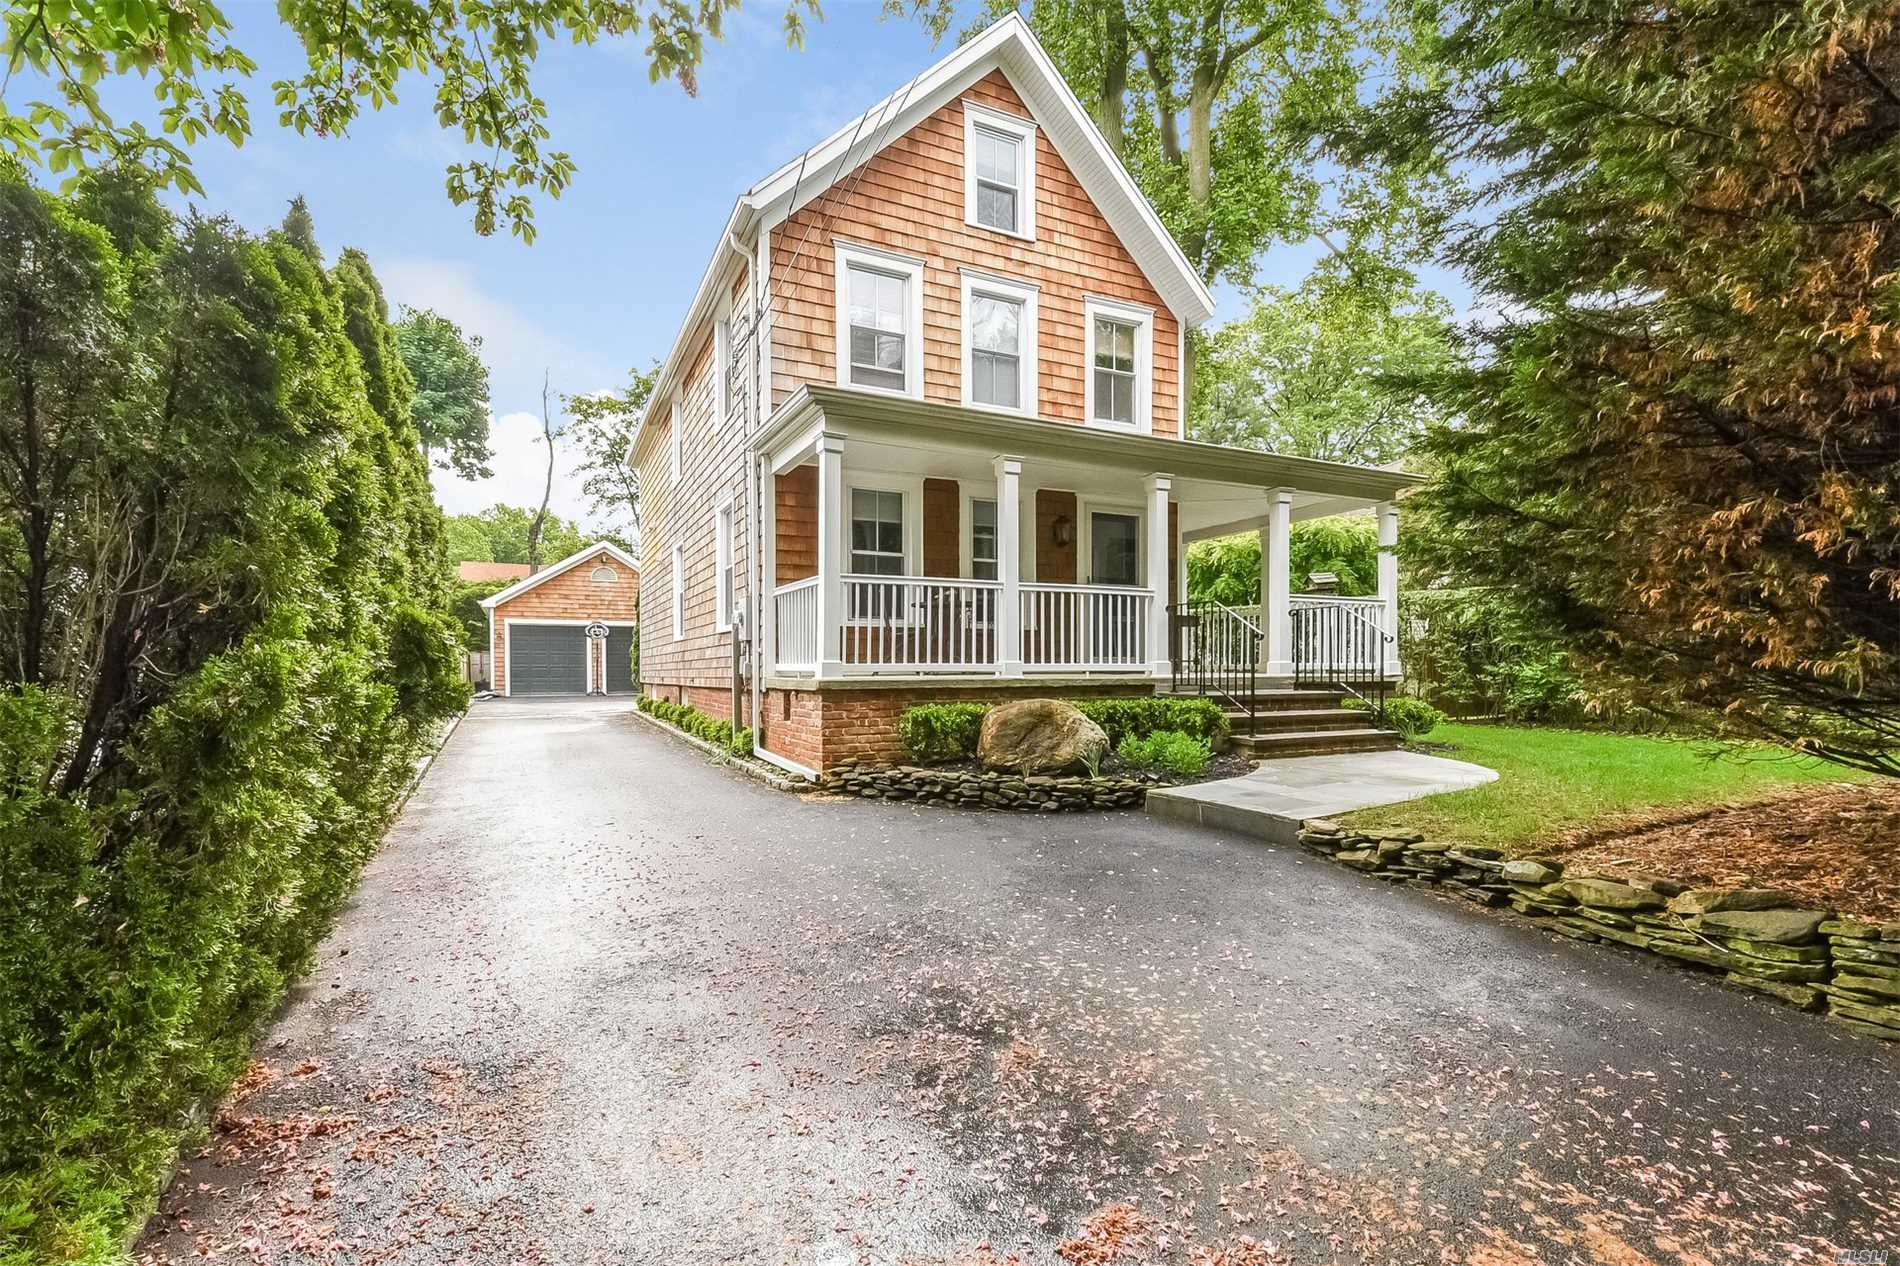 Photo of home for sale at 48 Franklin Ave, Glen Cove NY